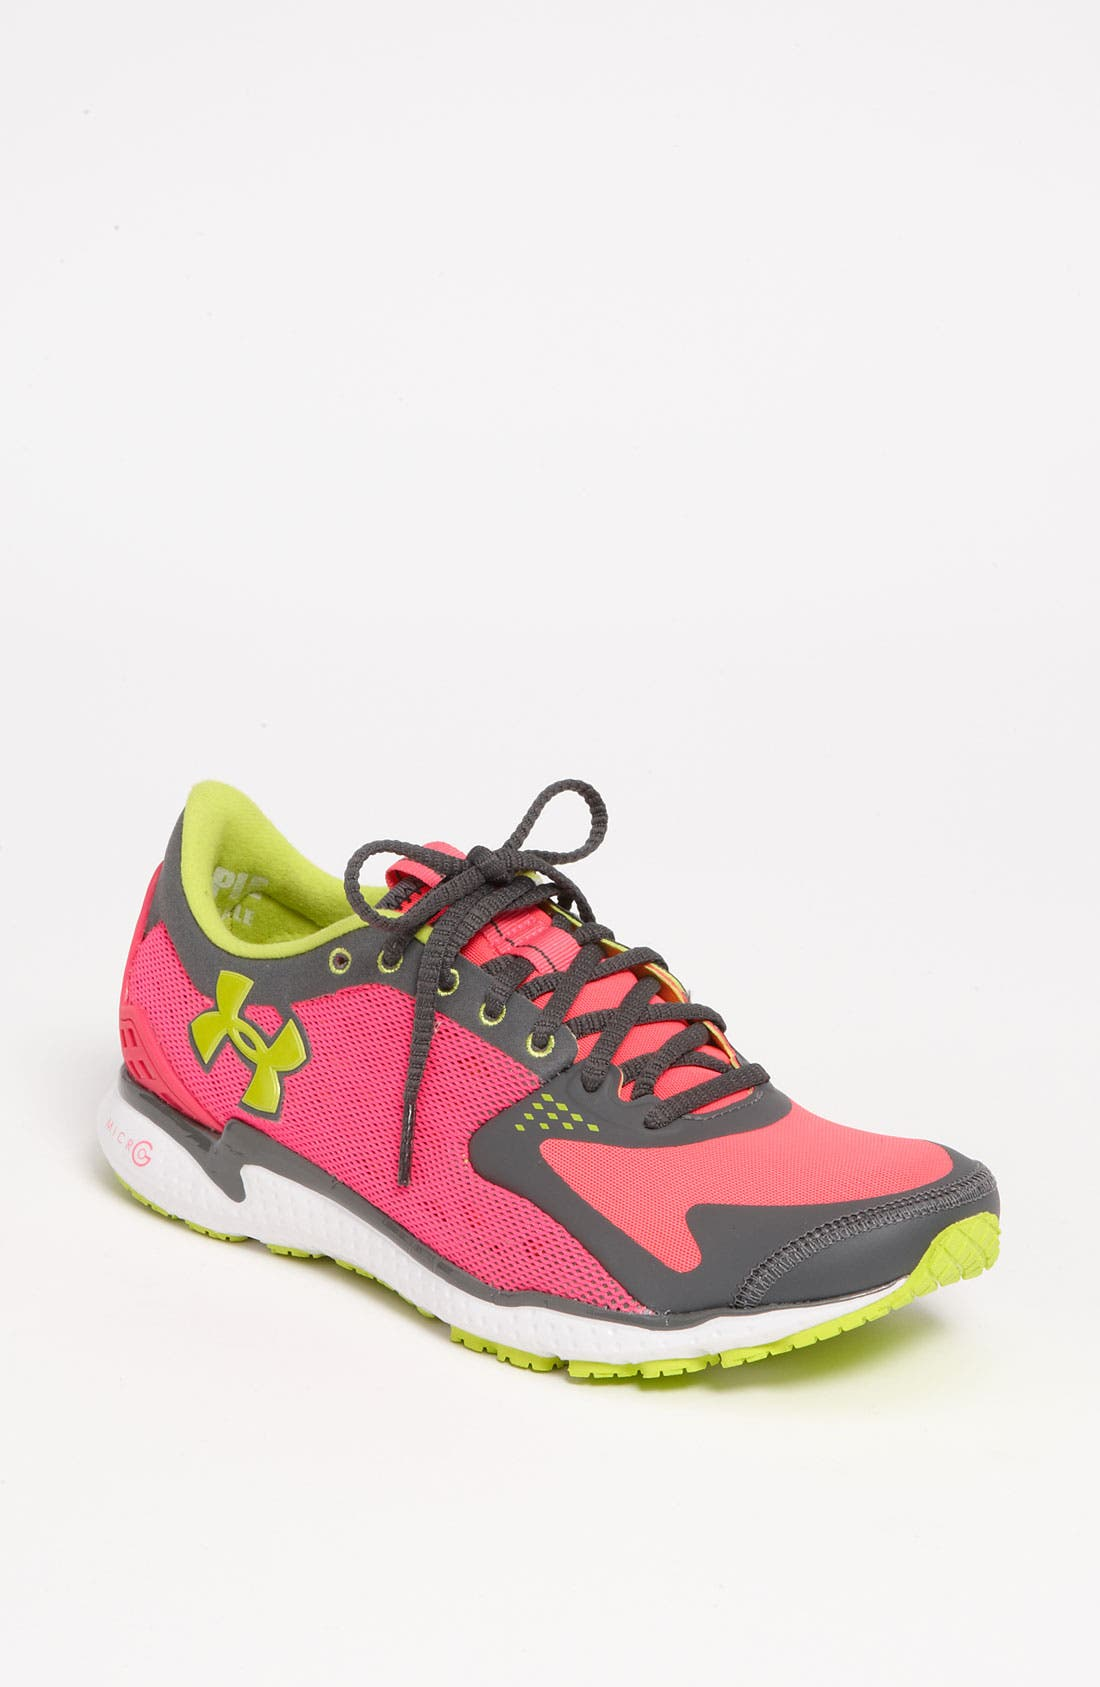 Alternate Image 1 Selected - Under Armour 'Micro G® Defy' Running Shoe (Women)